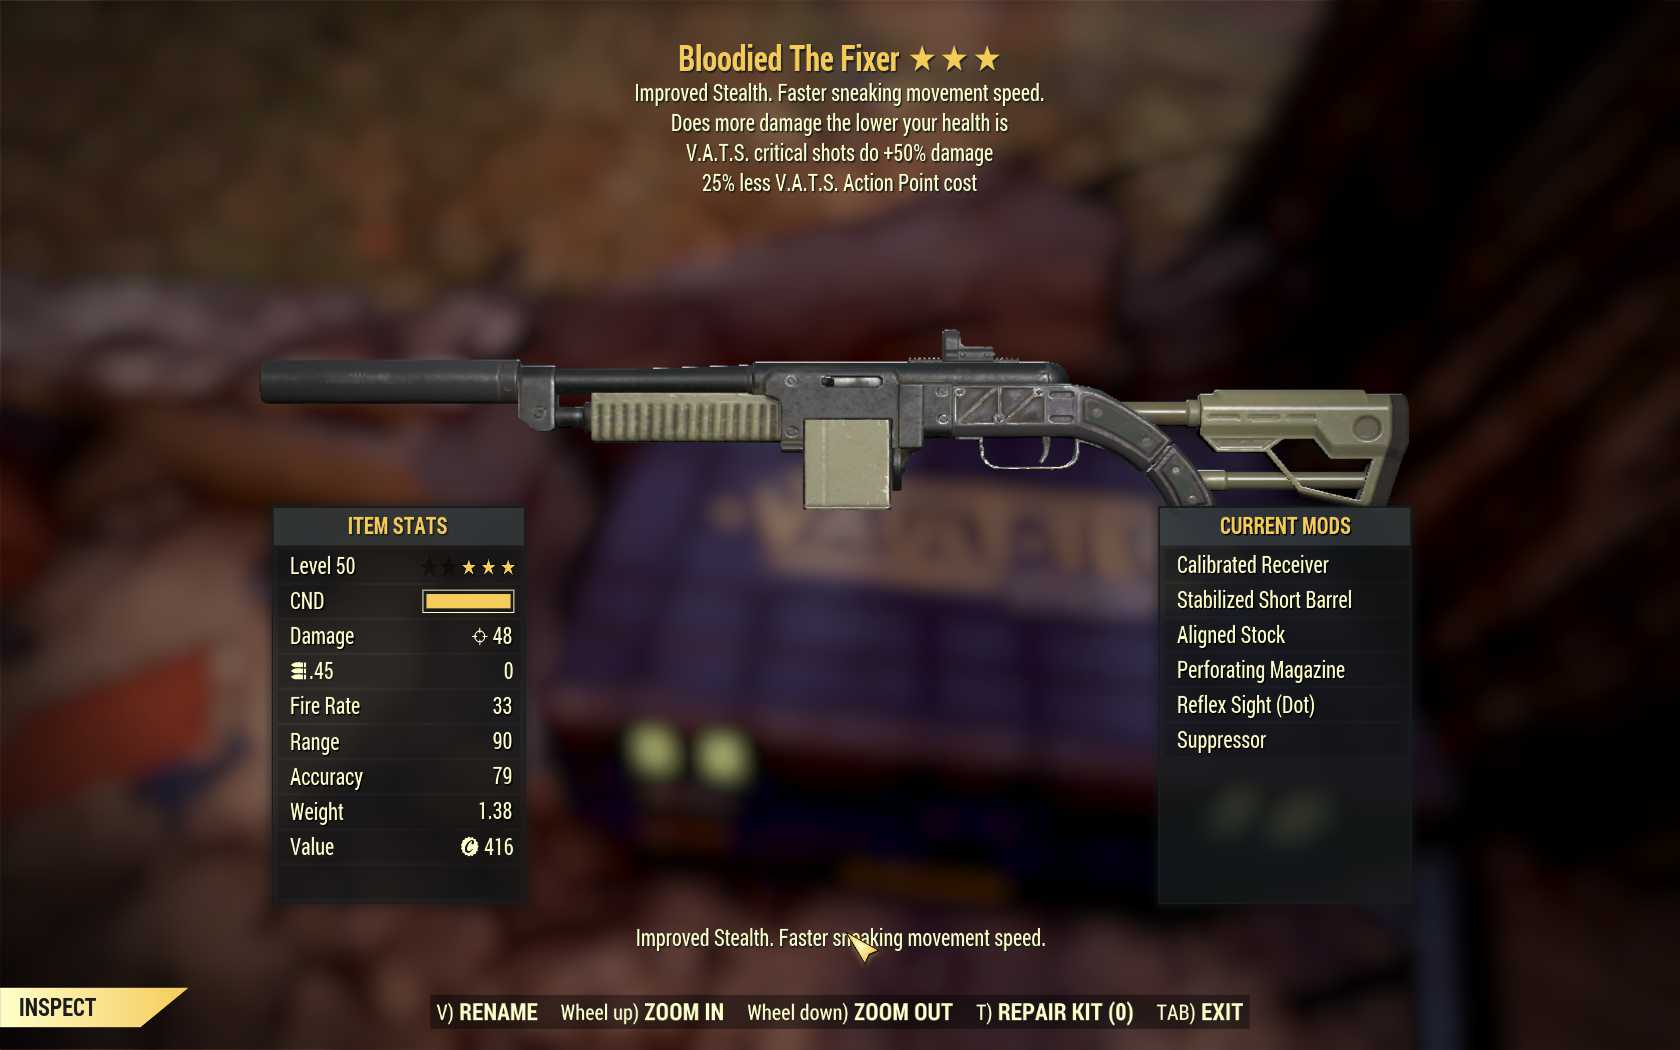 Bloodied The Fixer (50% critical damage, 25% less VATS AP cost)